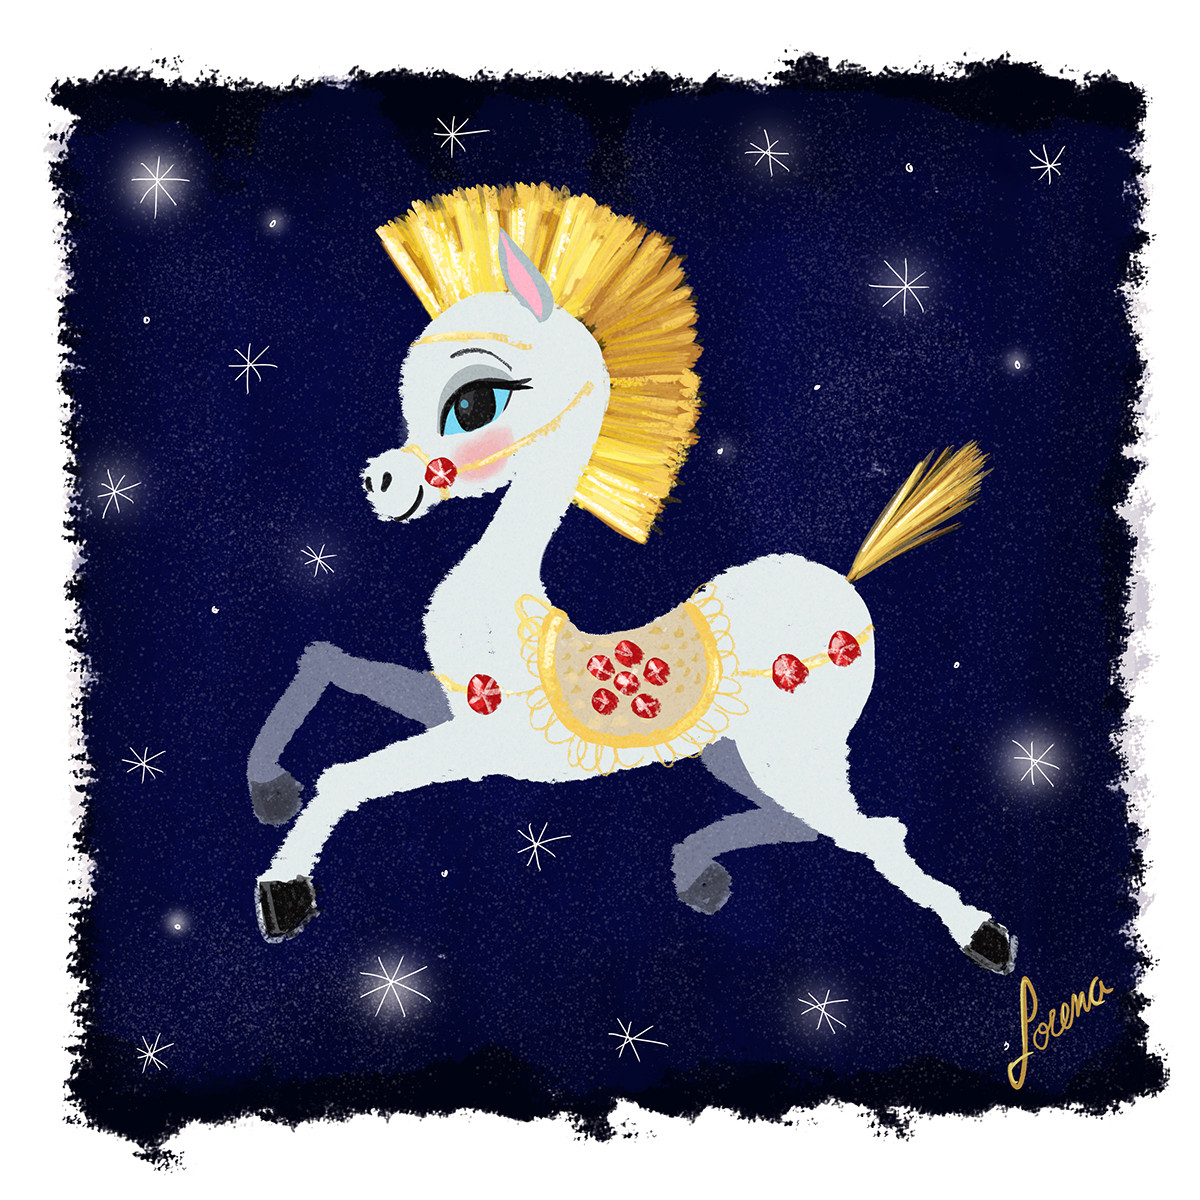 Lorena loguen magic pony for wish you a happy new year by lorena loguen